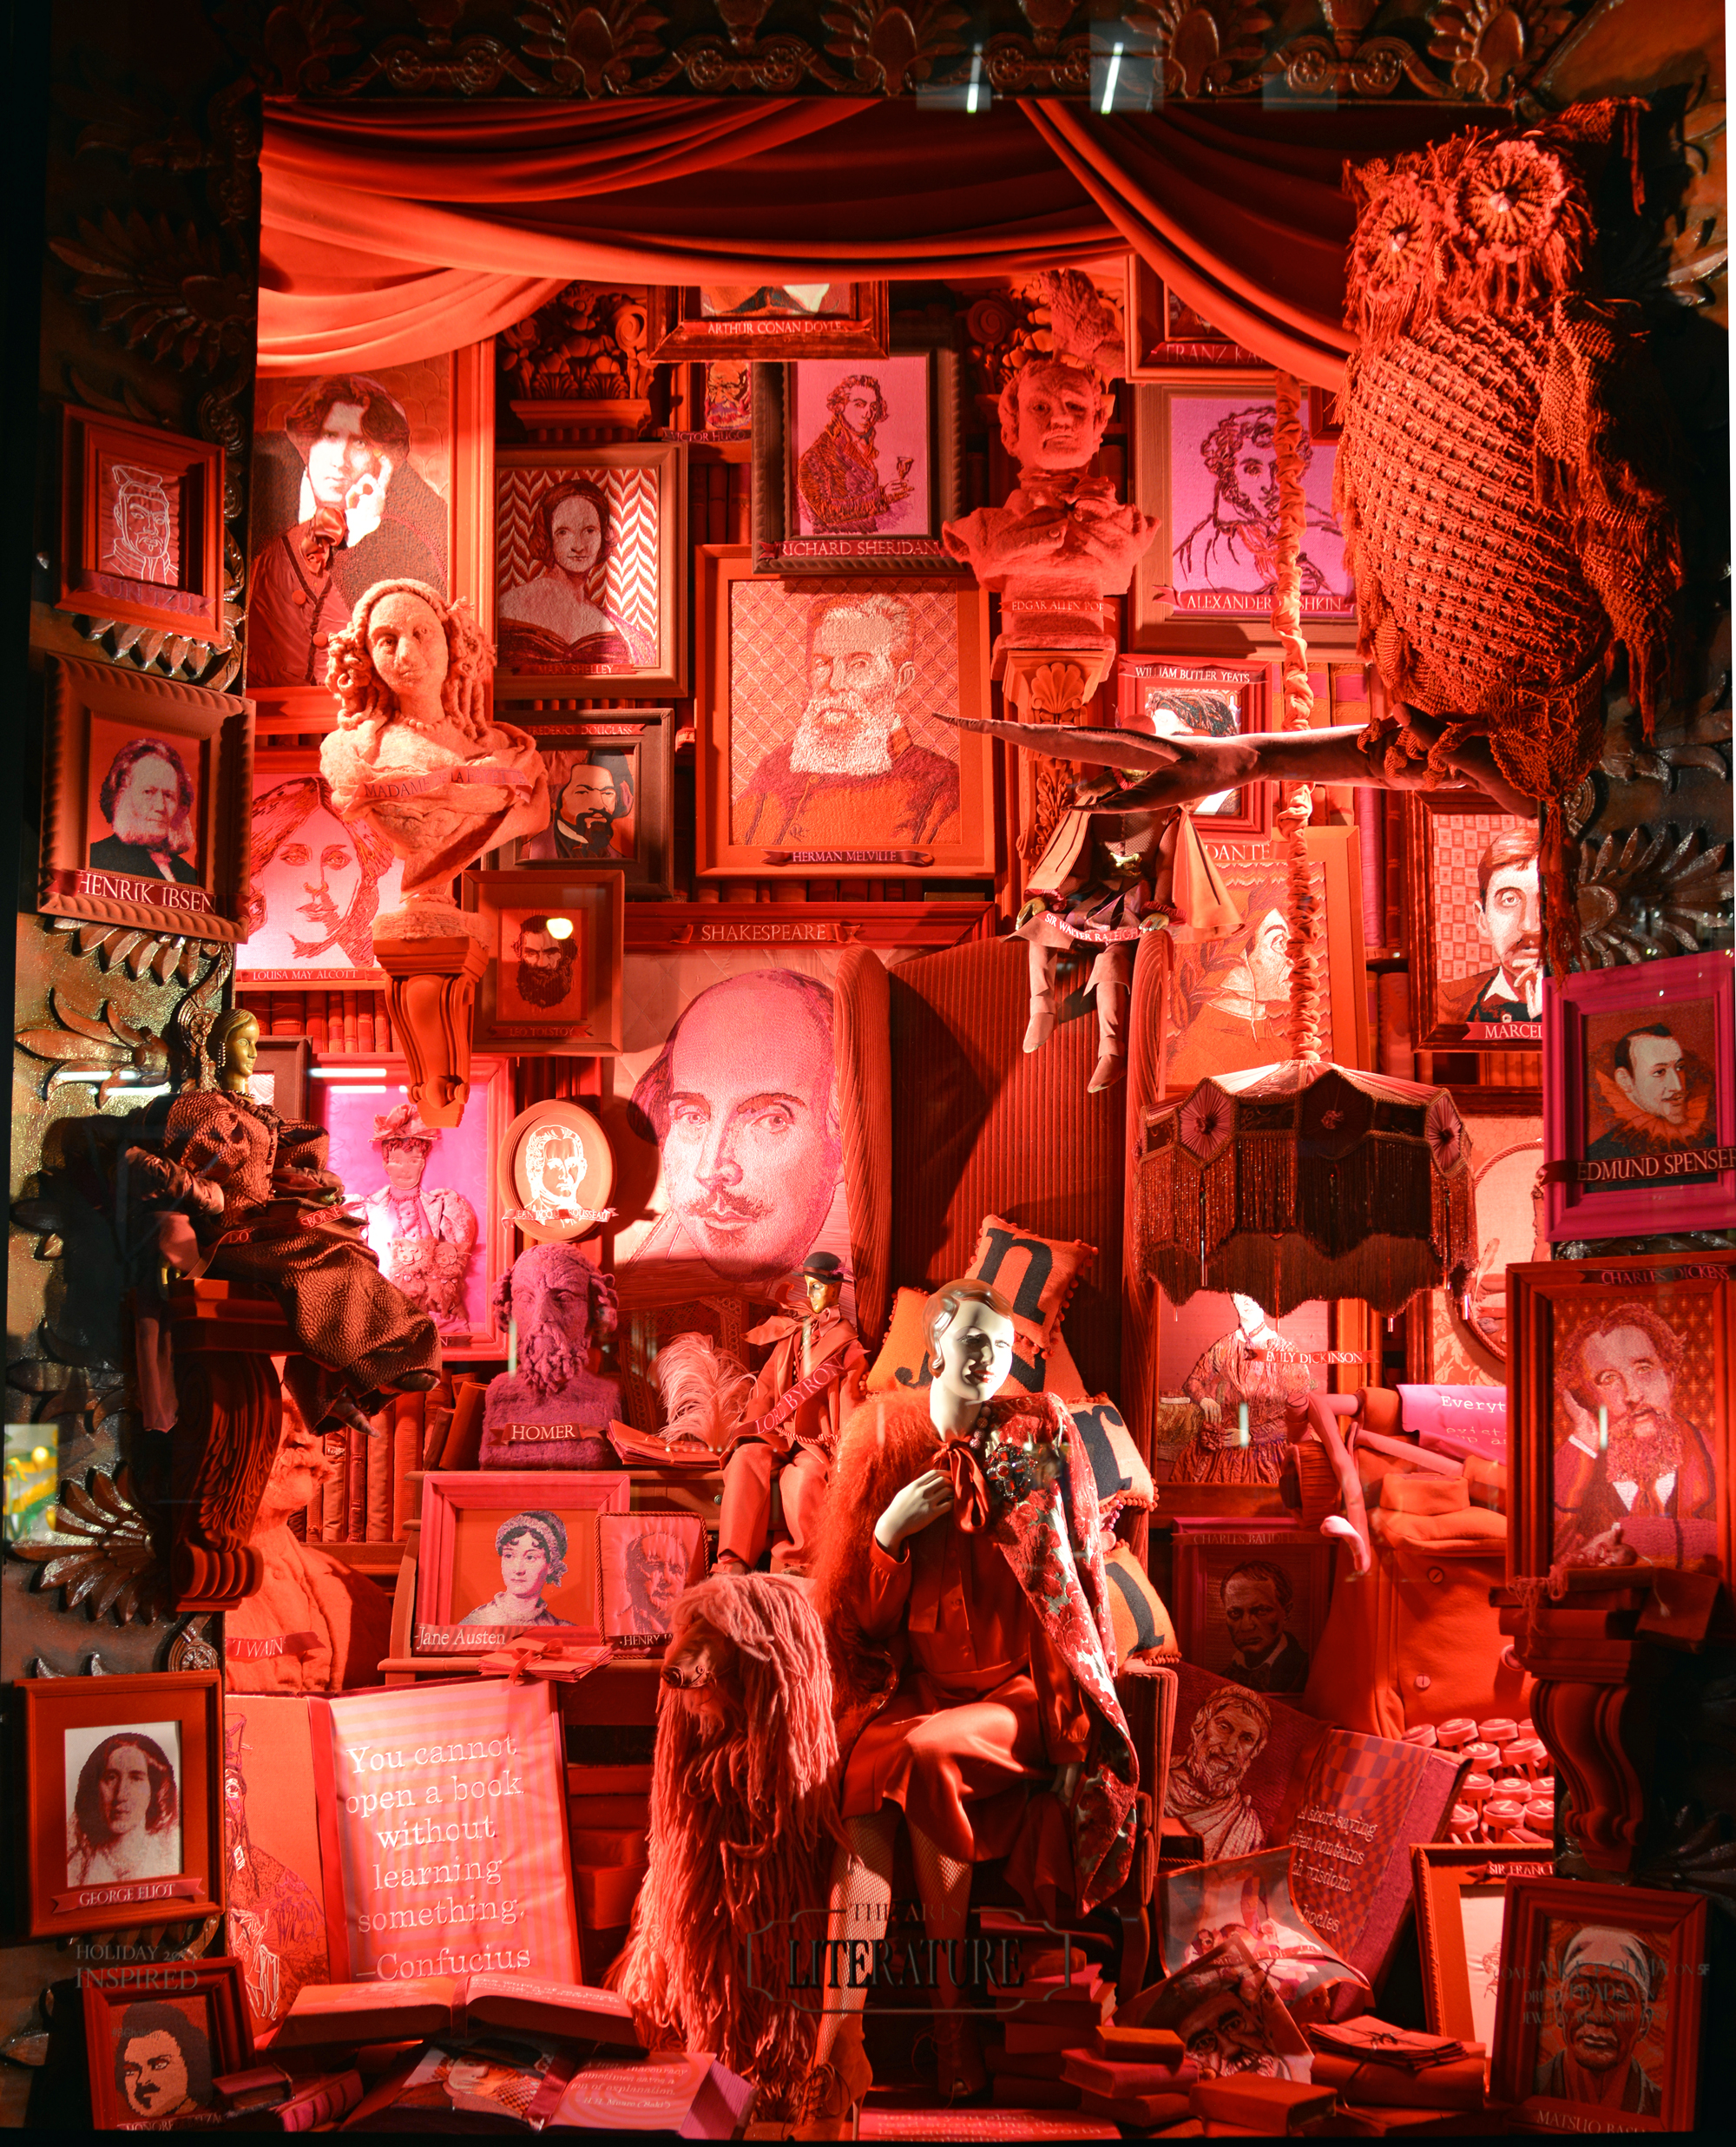 Bergdorf Goodman Window Display - Literature | Lauren Caron © 2014